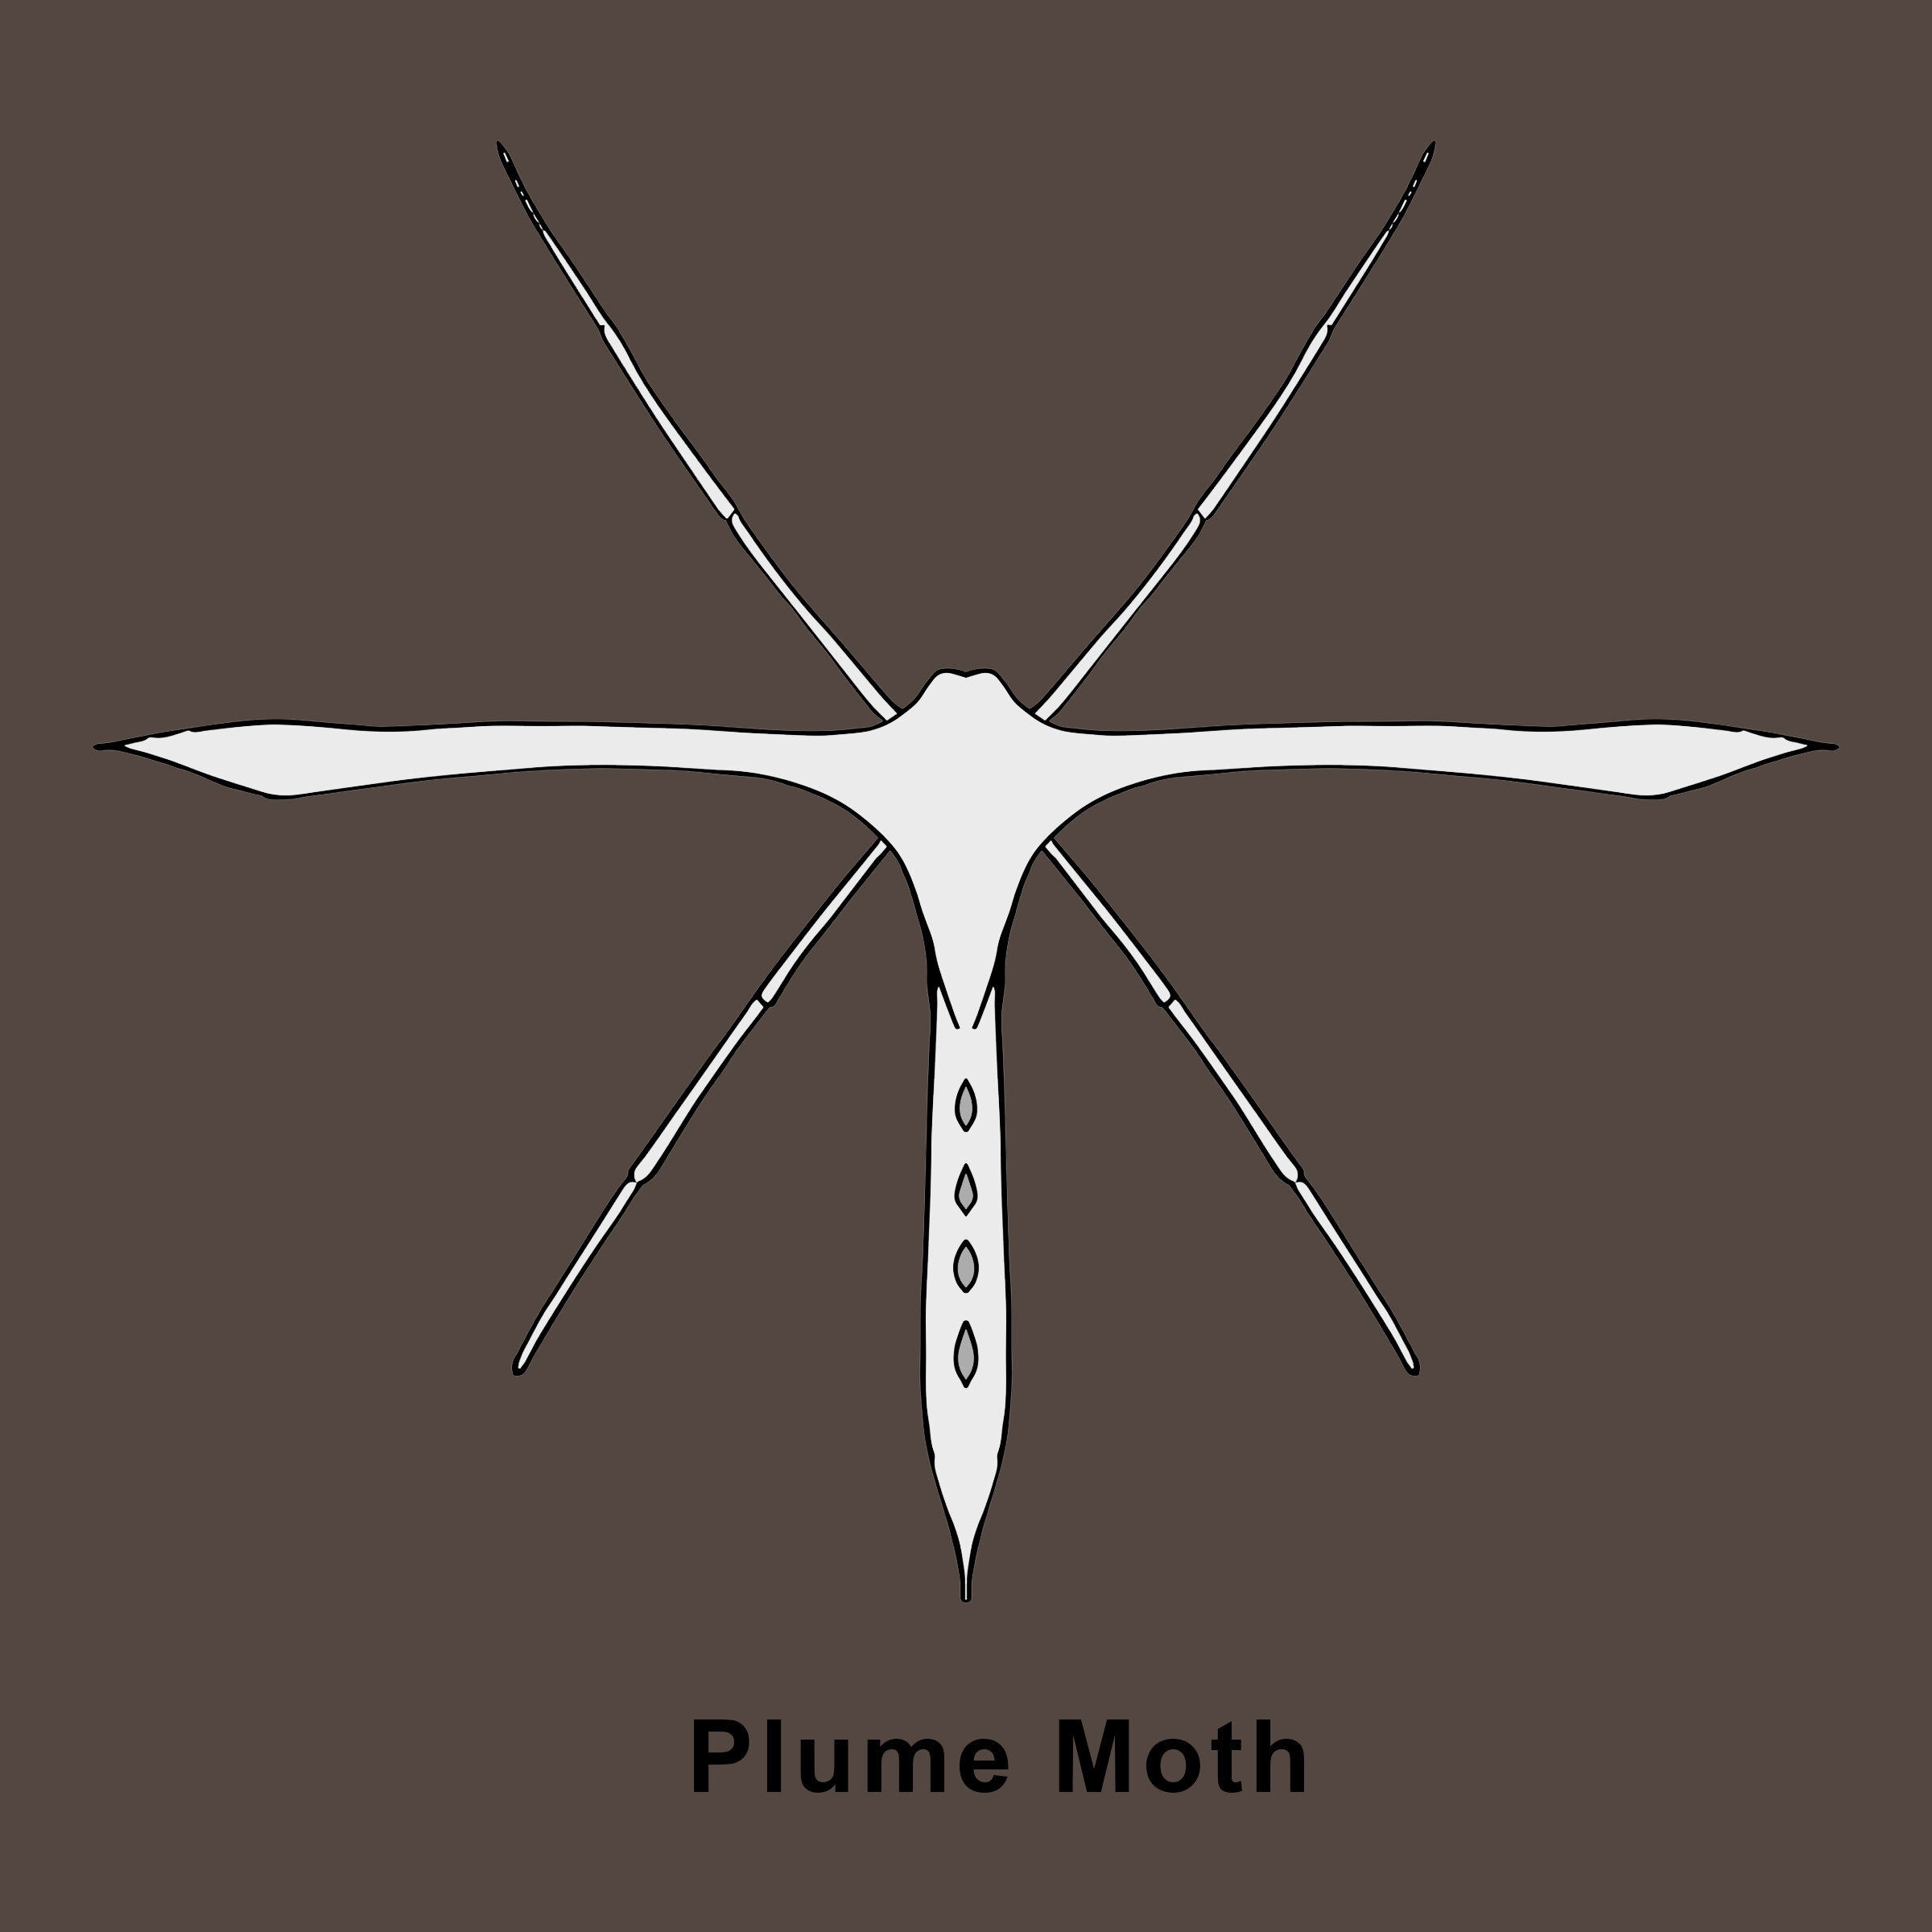 Plume Moth Finished.jpg